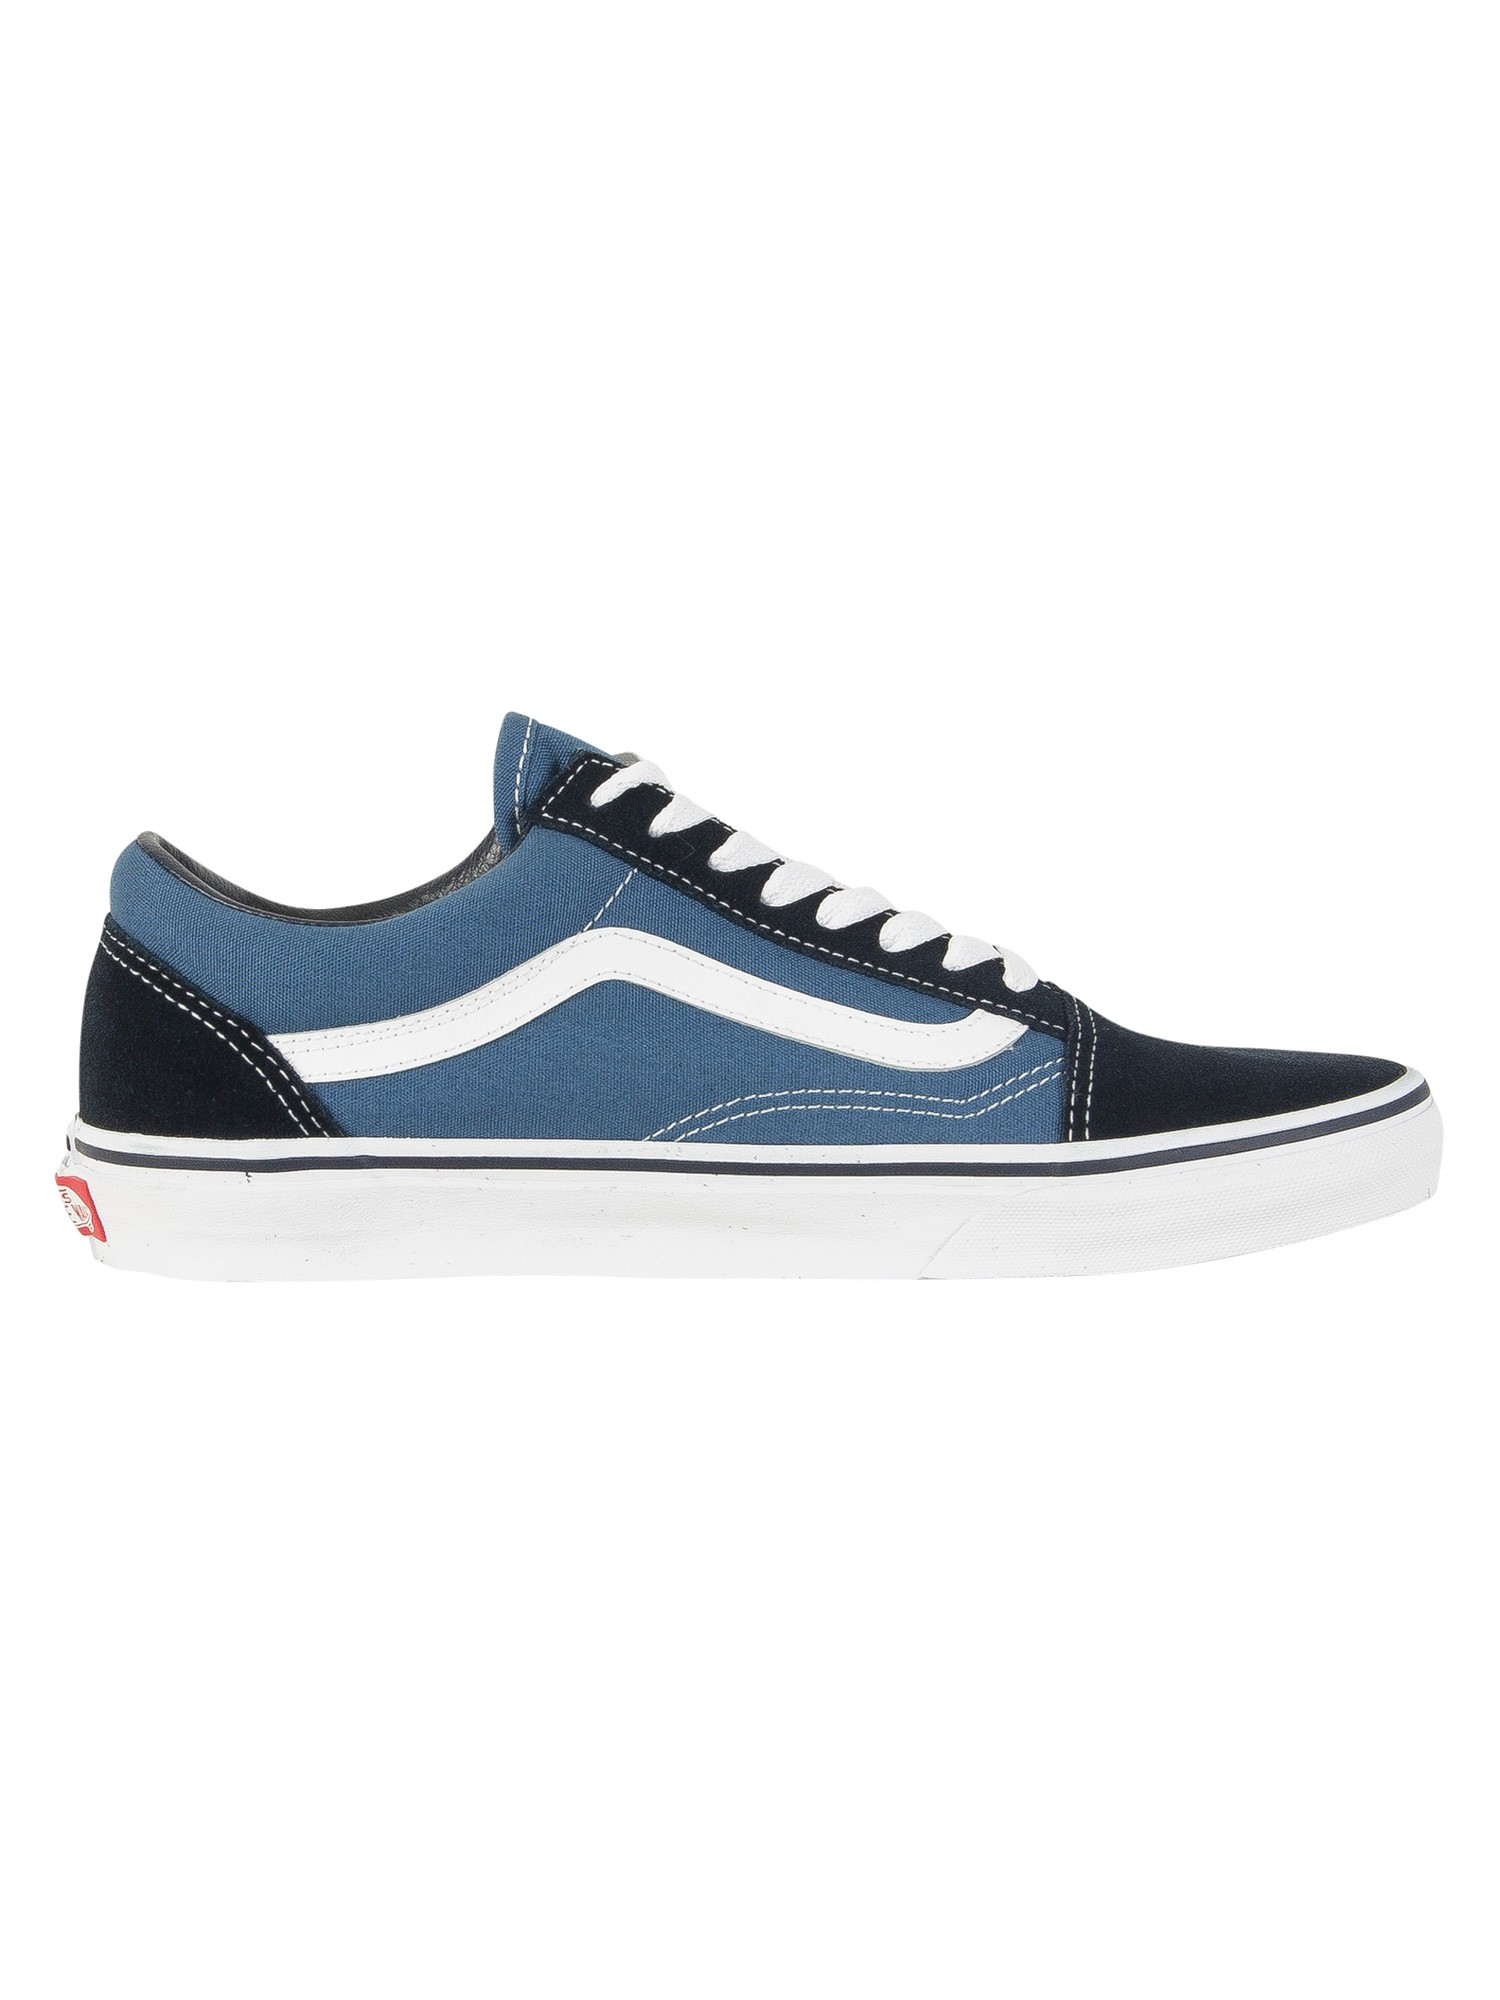 vans herren old skool trainer blau ebay. Black Bedroom Furniture Sets. Home Design Ideas